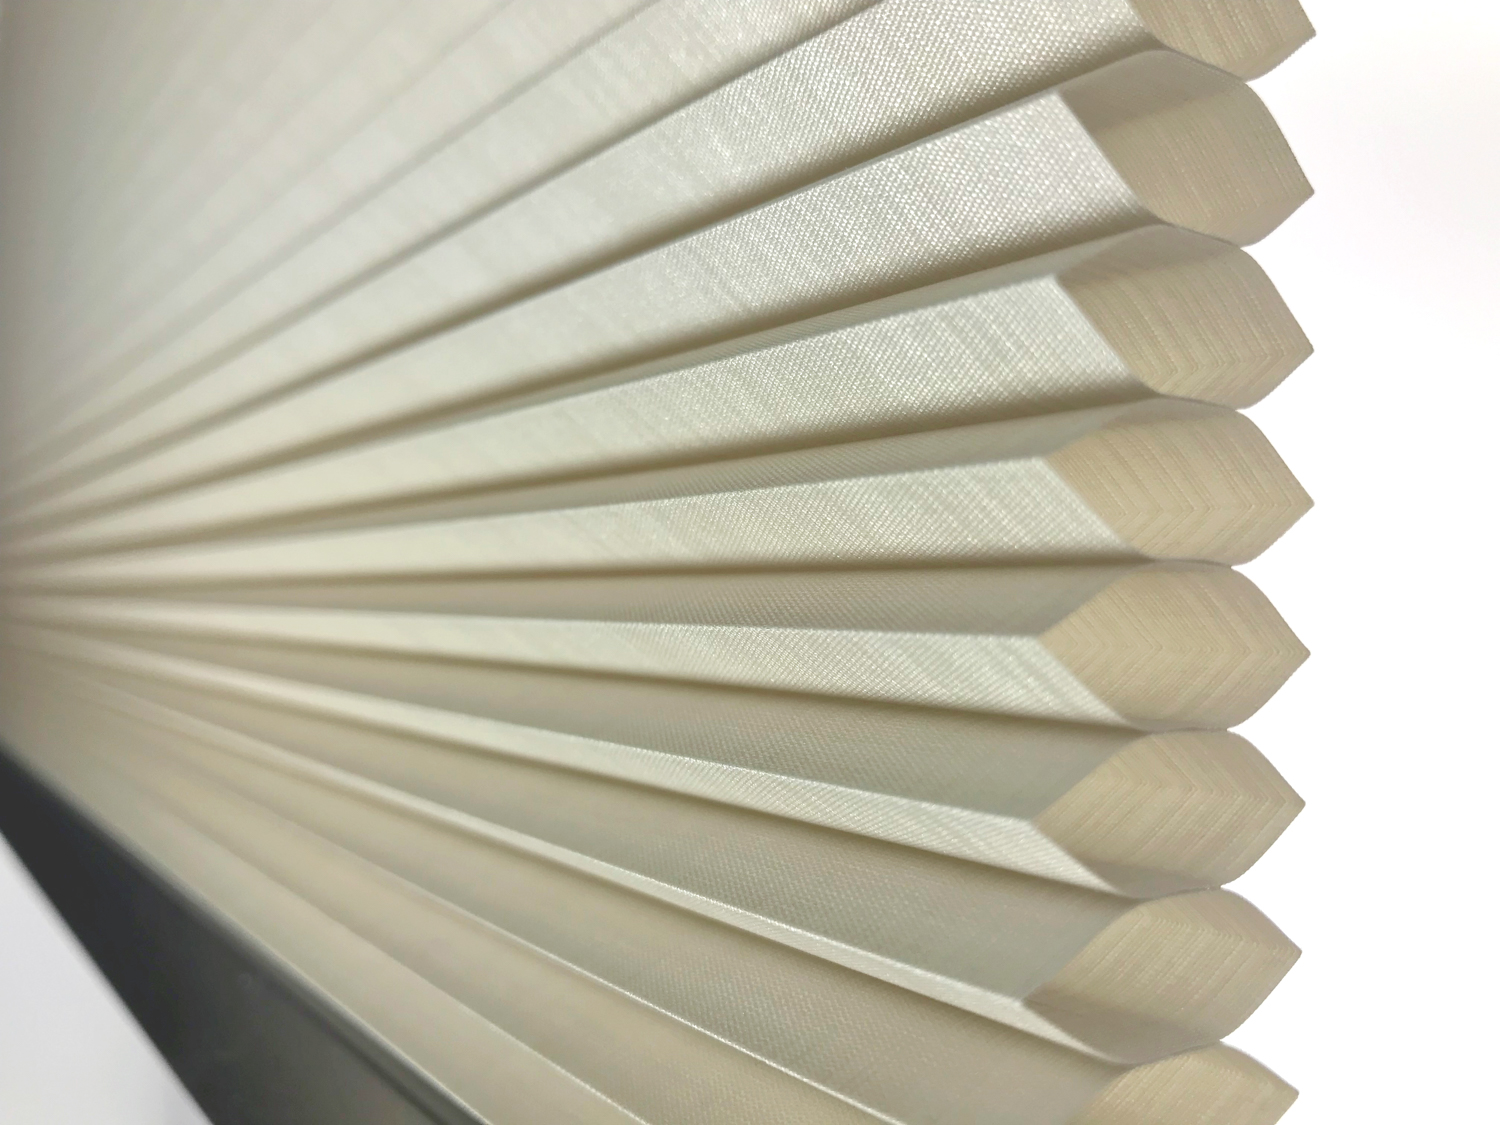 internal honeycomb structure of an ecofit blind